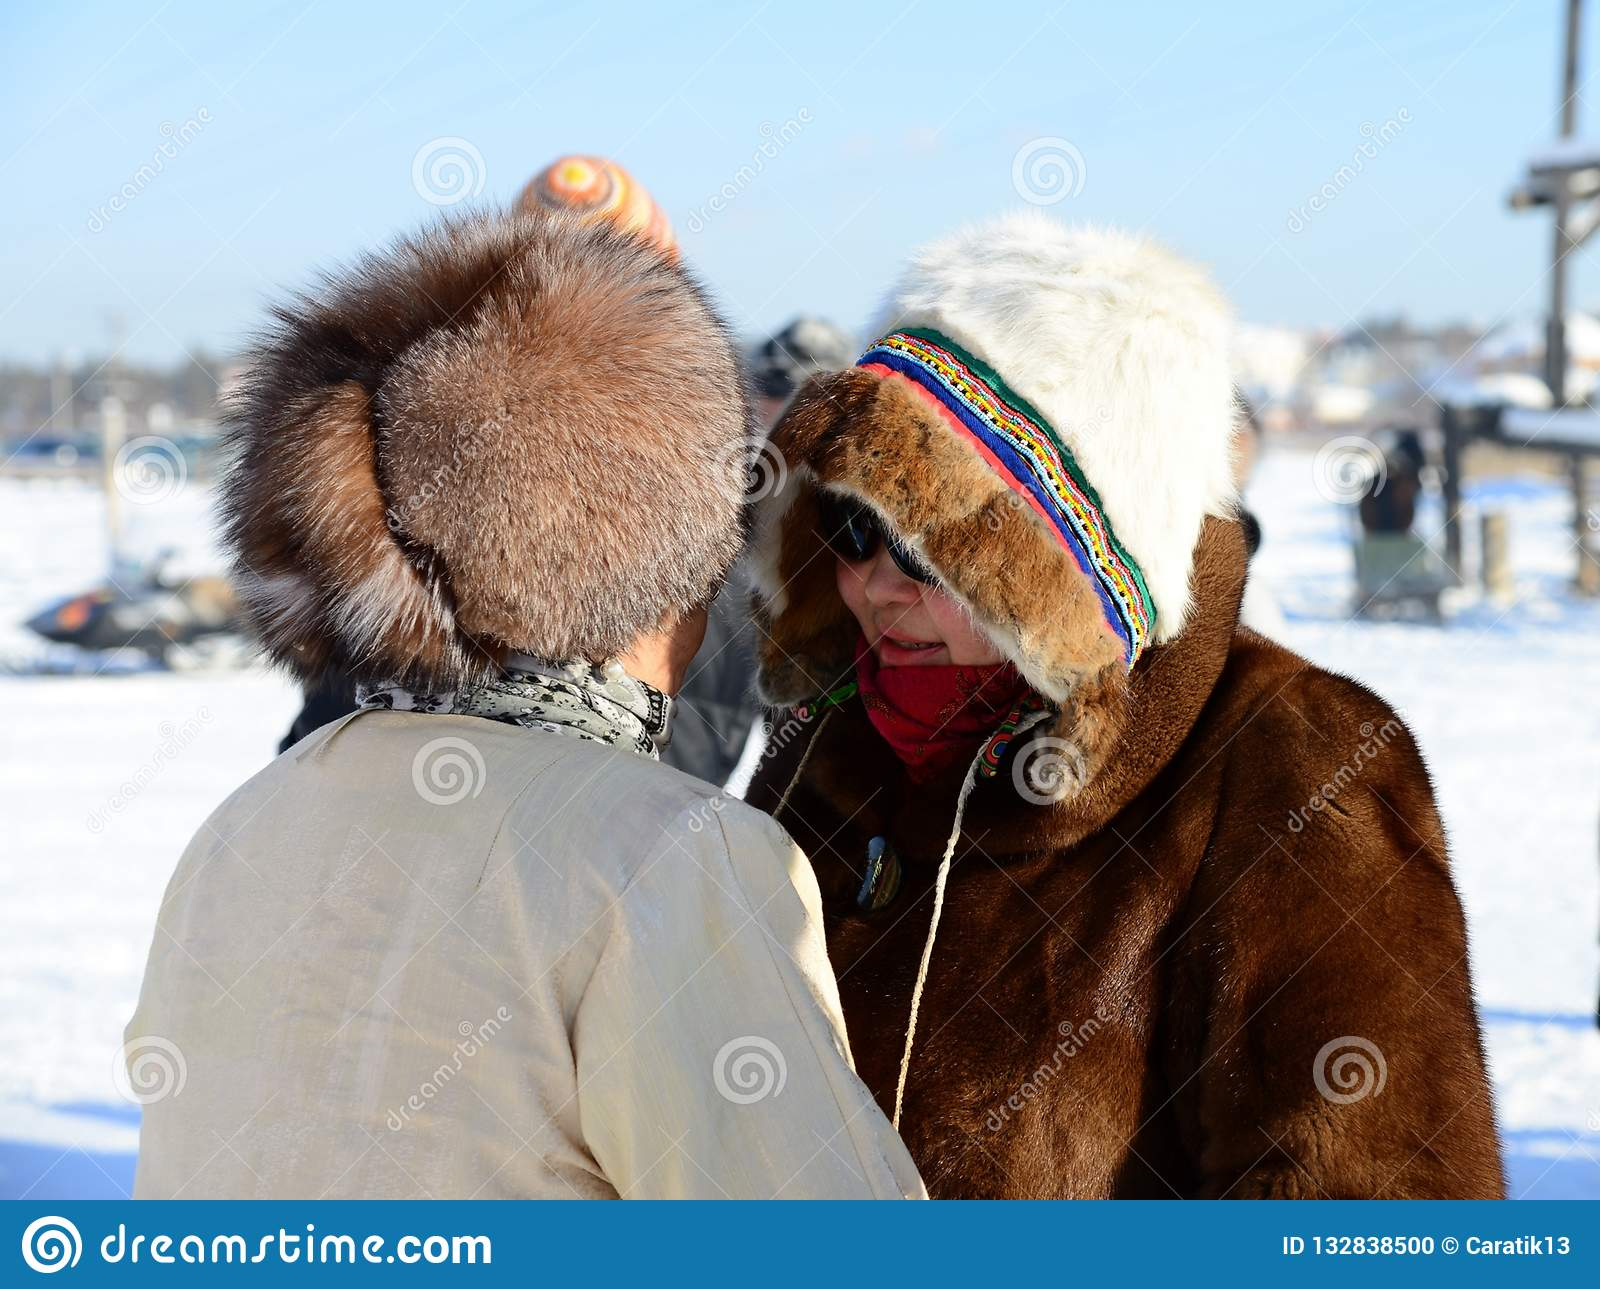 8c2f56bddaa63 Yakutsk, Republic of Sakha Yakutia/Russia-March 01 2015: women in traditional  clothes and fur hats talking to each other